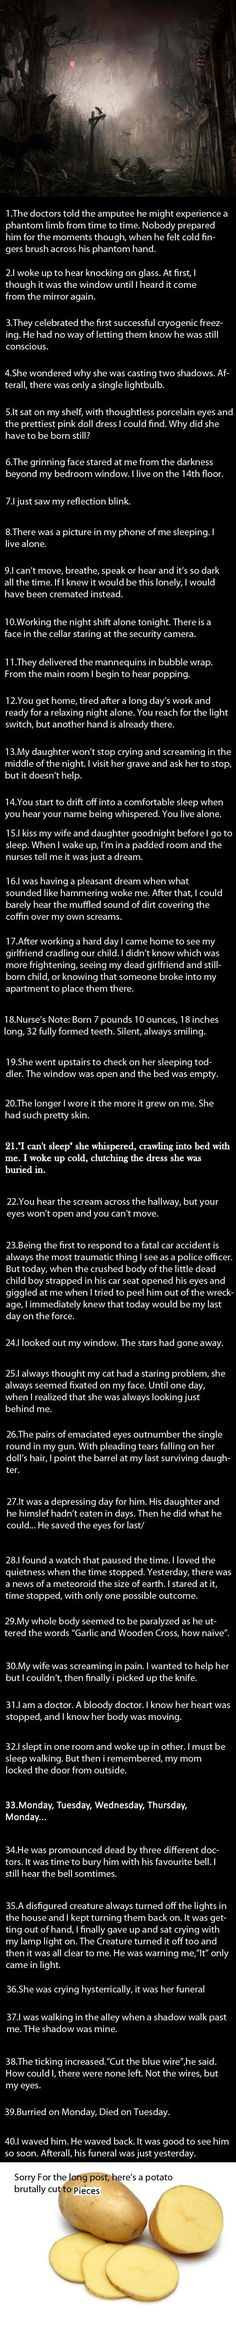 40 Short Scary Stories. - 9GAG